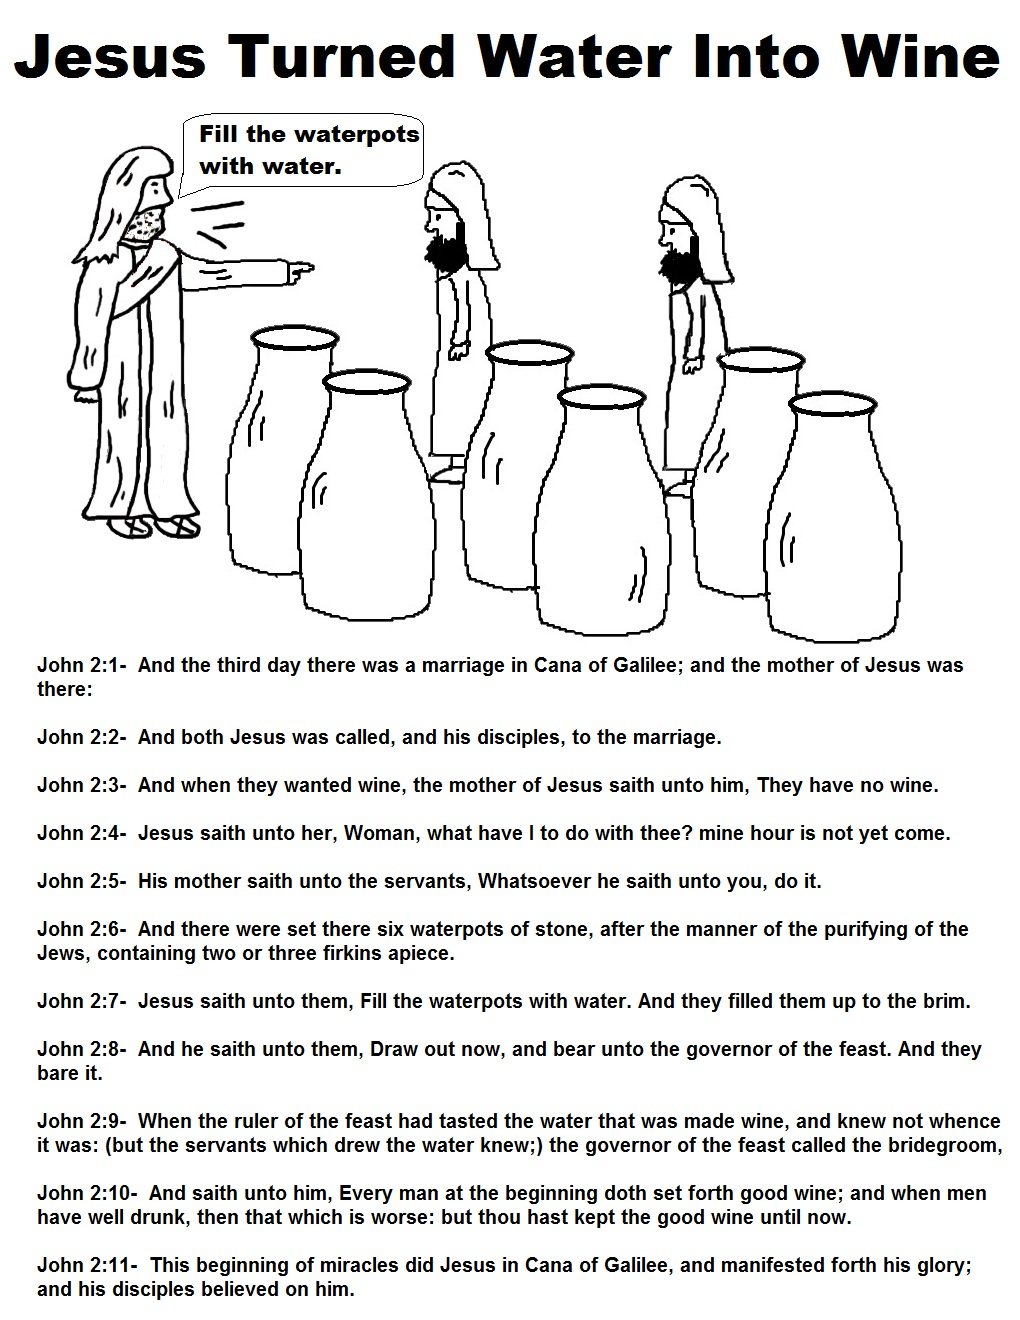 Coloring Pages For Jesus Turning Water Into Wine : Free coloring pages of the first miracle jesus